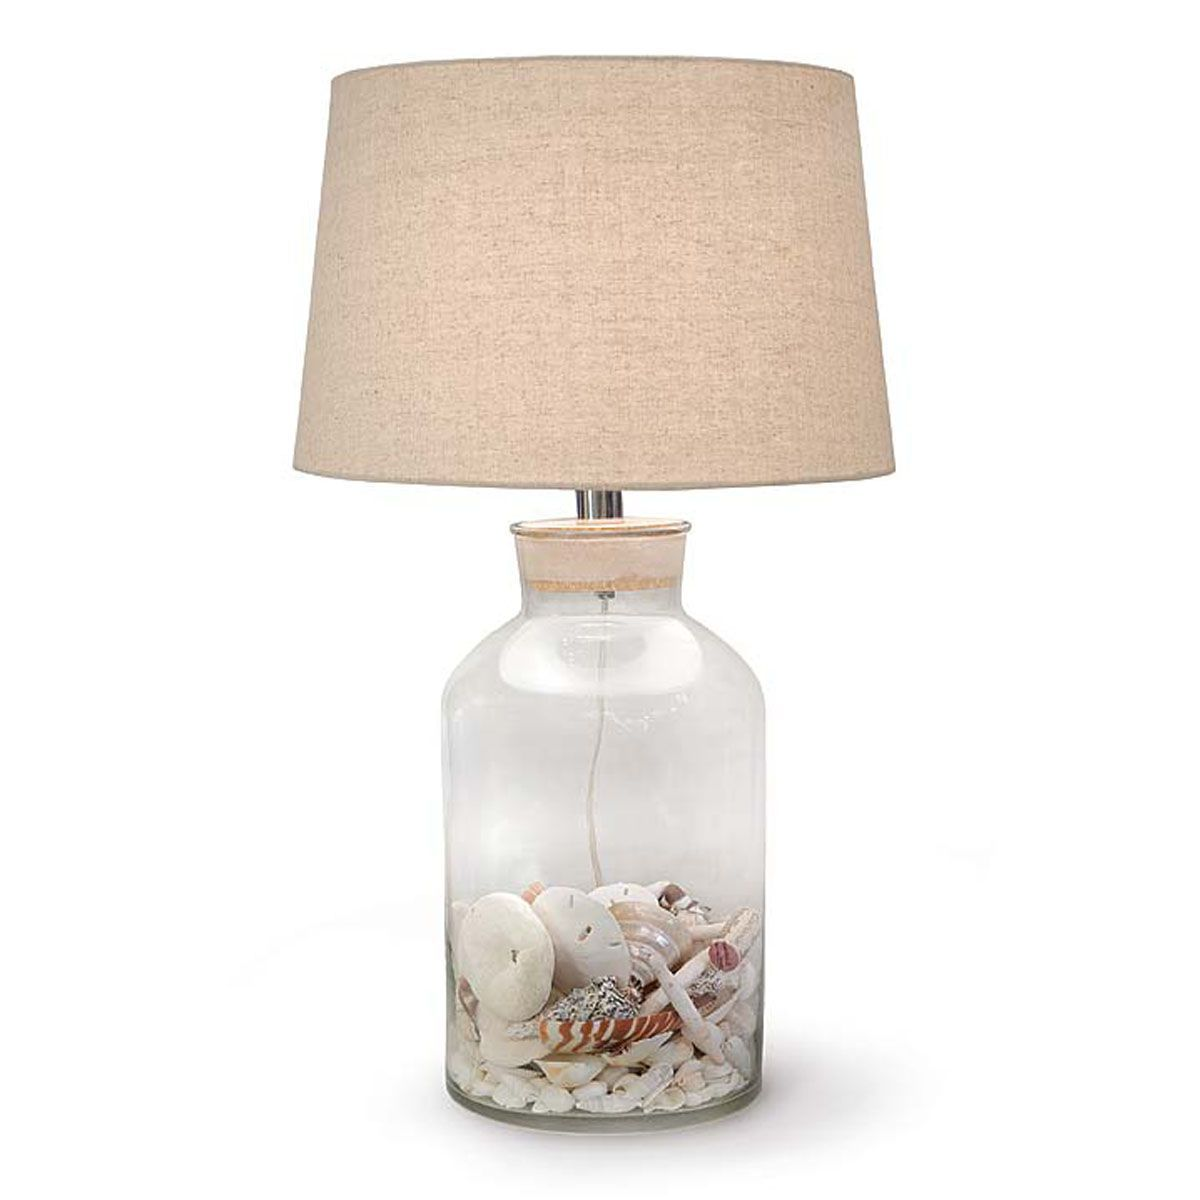 Custom Lamp with your picturesYour Own photo turned into an Keepsake